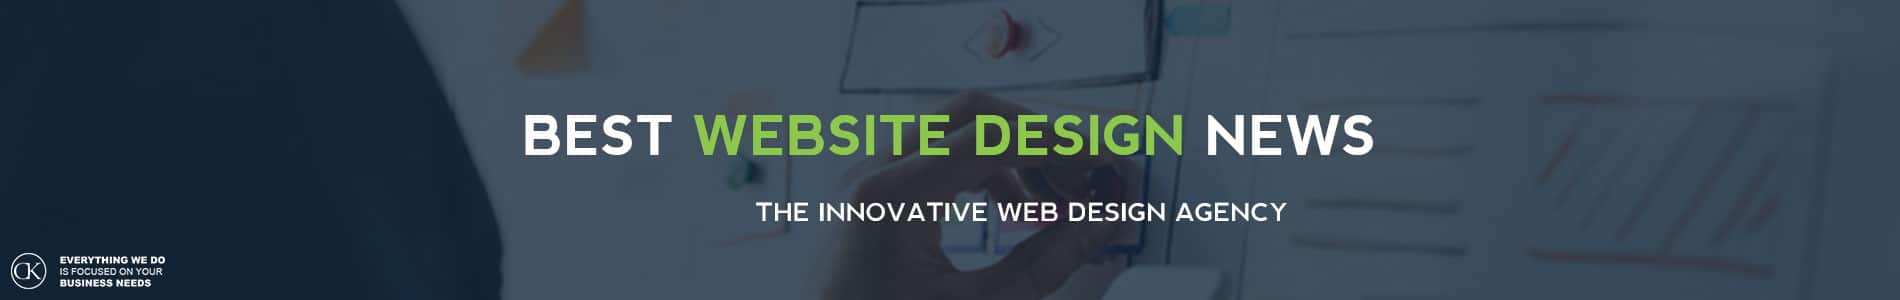 website design news by ck website design dublin